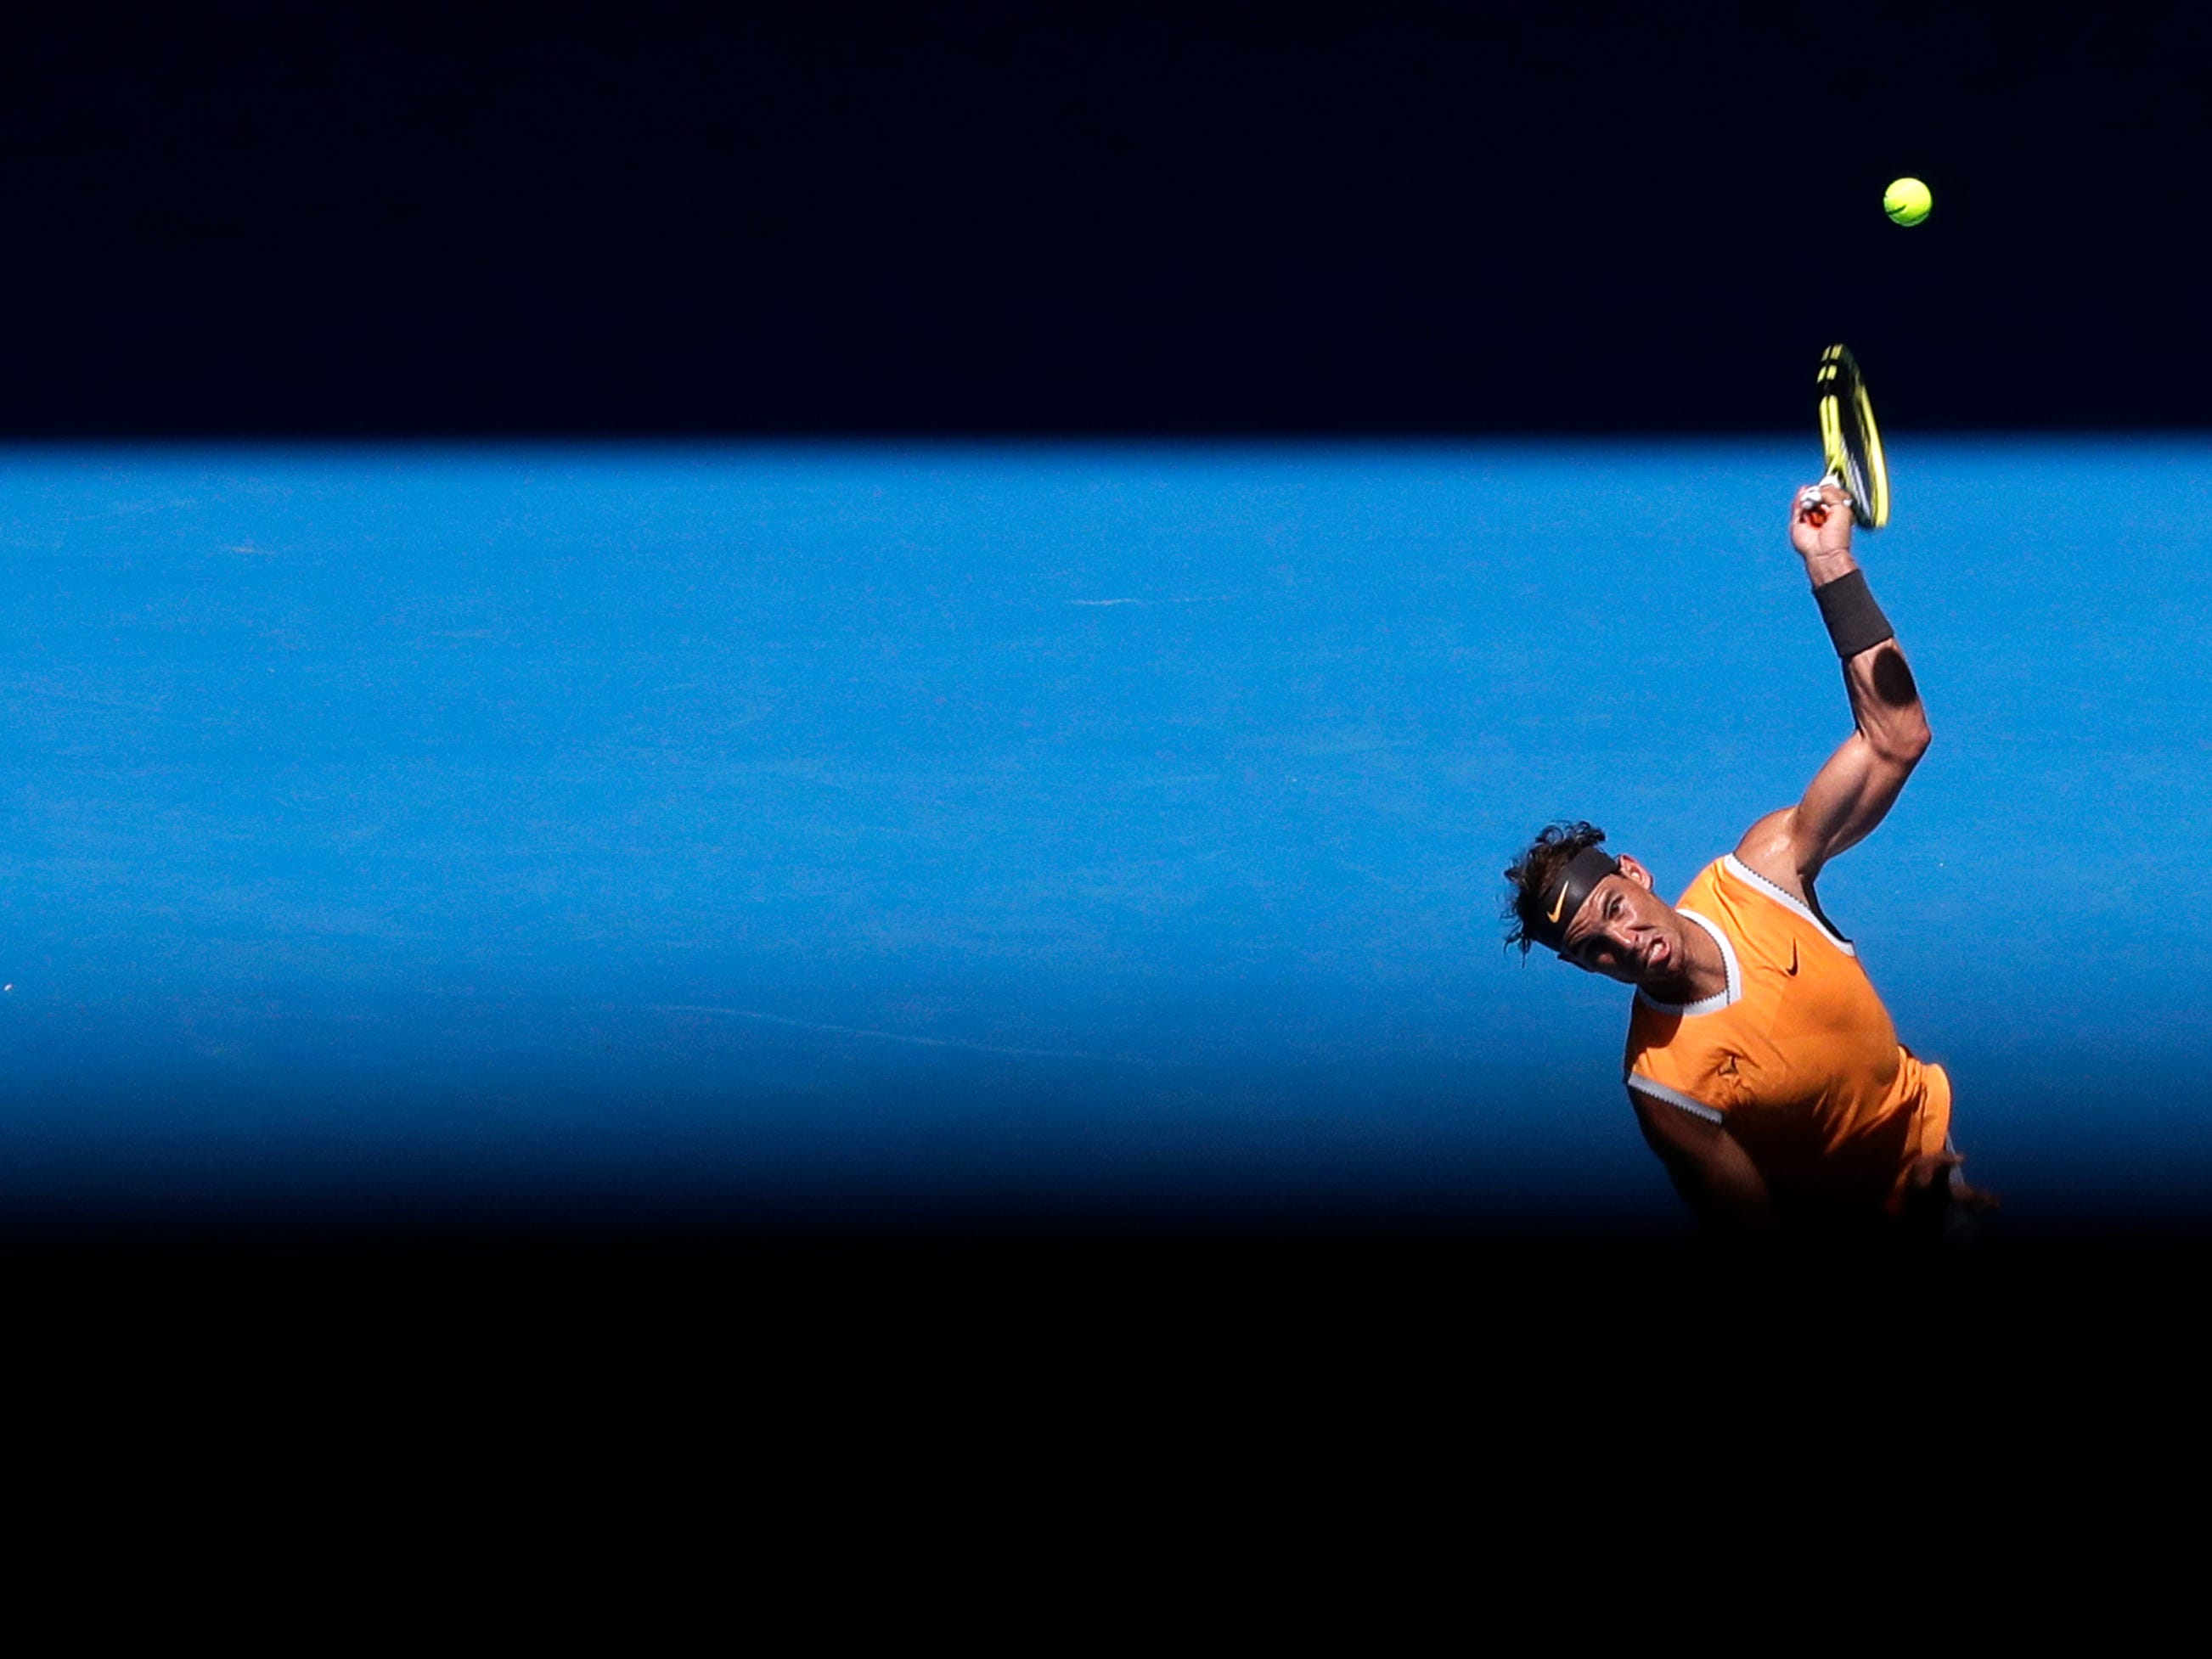 Spain's Rafael Nadal serves to Australia's James Duckworth in their first round match at the Australian Open tennis championships in Melbourne, Australia, Monday, Jan. 14, 2019.